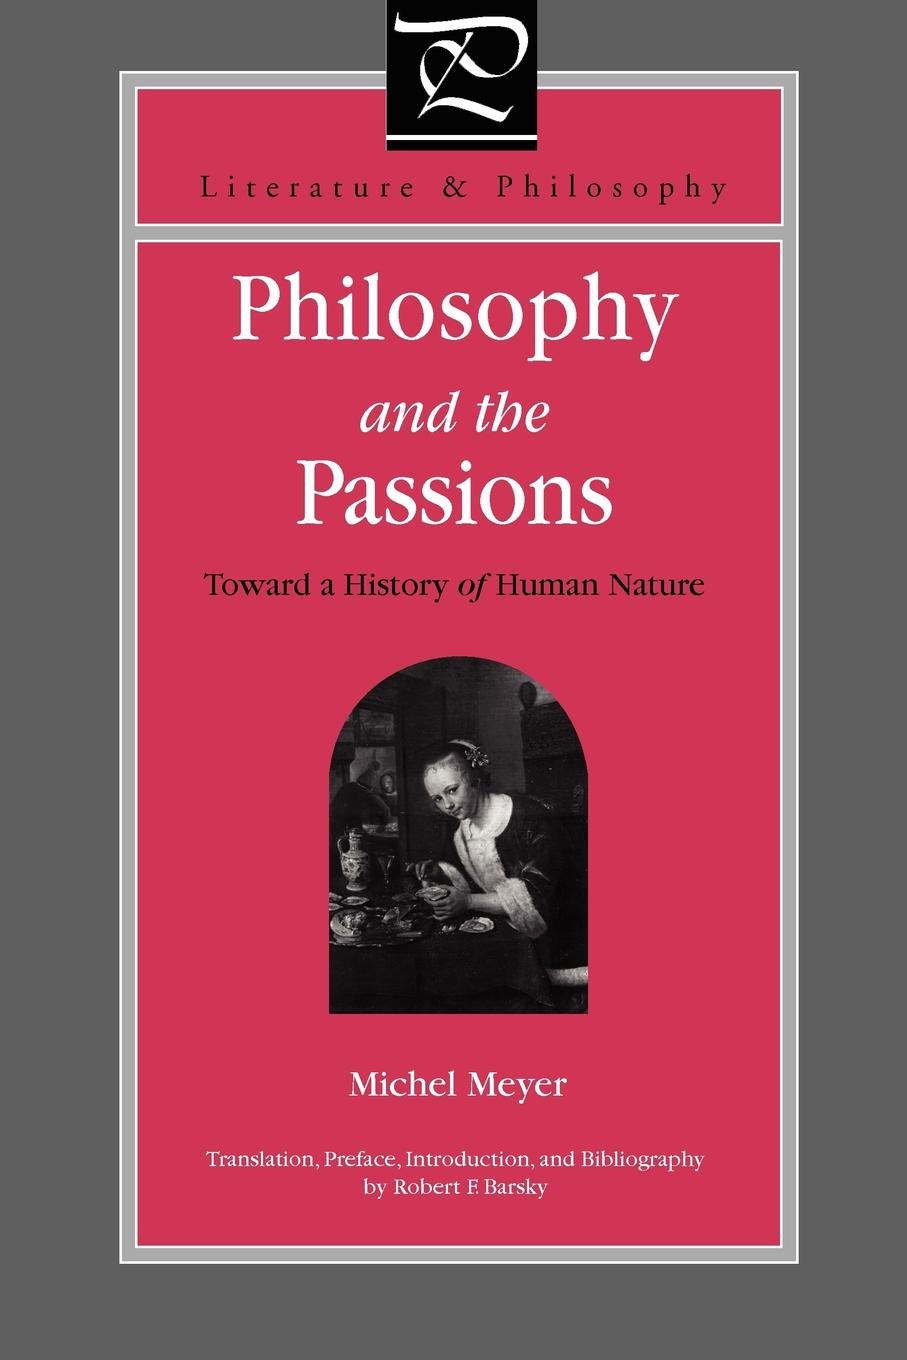 Download Philosophy and the Passions: Towards a History of Human Nature (Literature and Philosophy) PDF